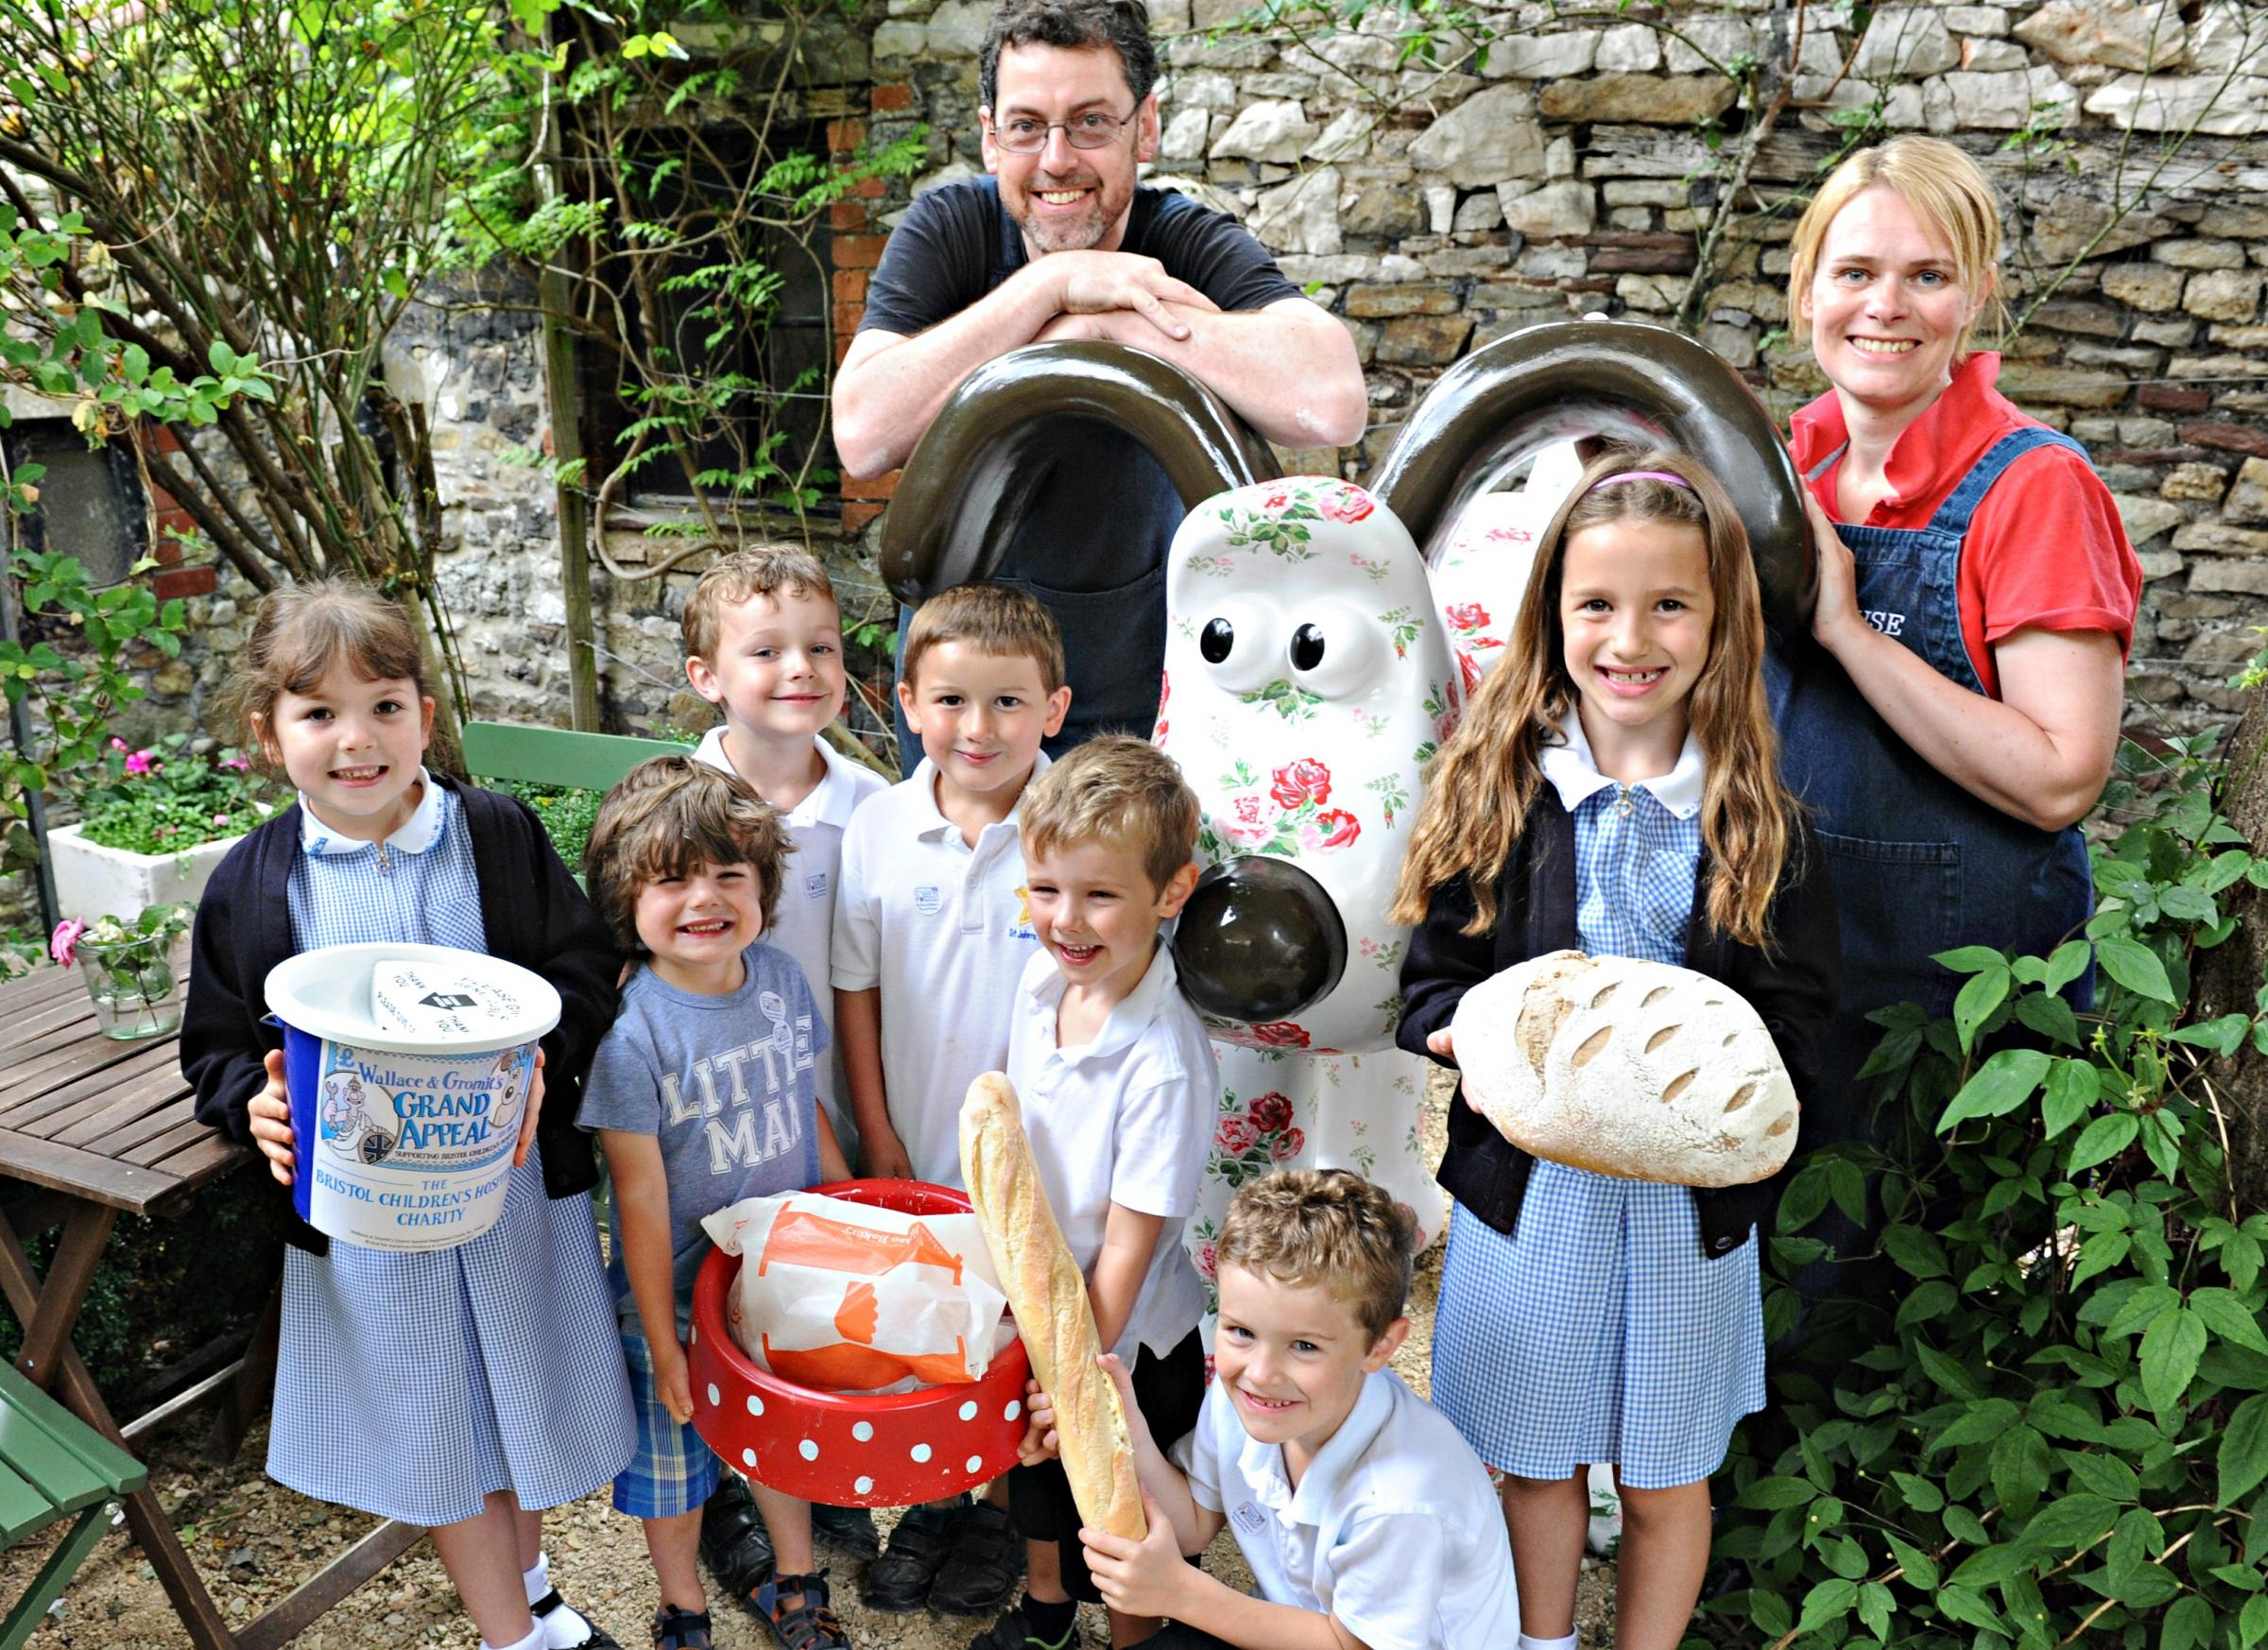 Andrew Houghton and Jo Cox of Hobbs House Bakery with some younger customers and Antique Rose gromit who will be on a diet of Hobbs House bread over the next couple of weeks in the garden of the bakery in Chipping Sodbury